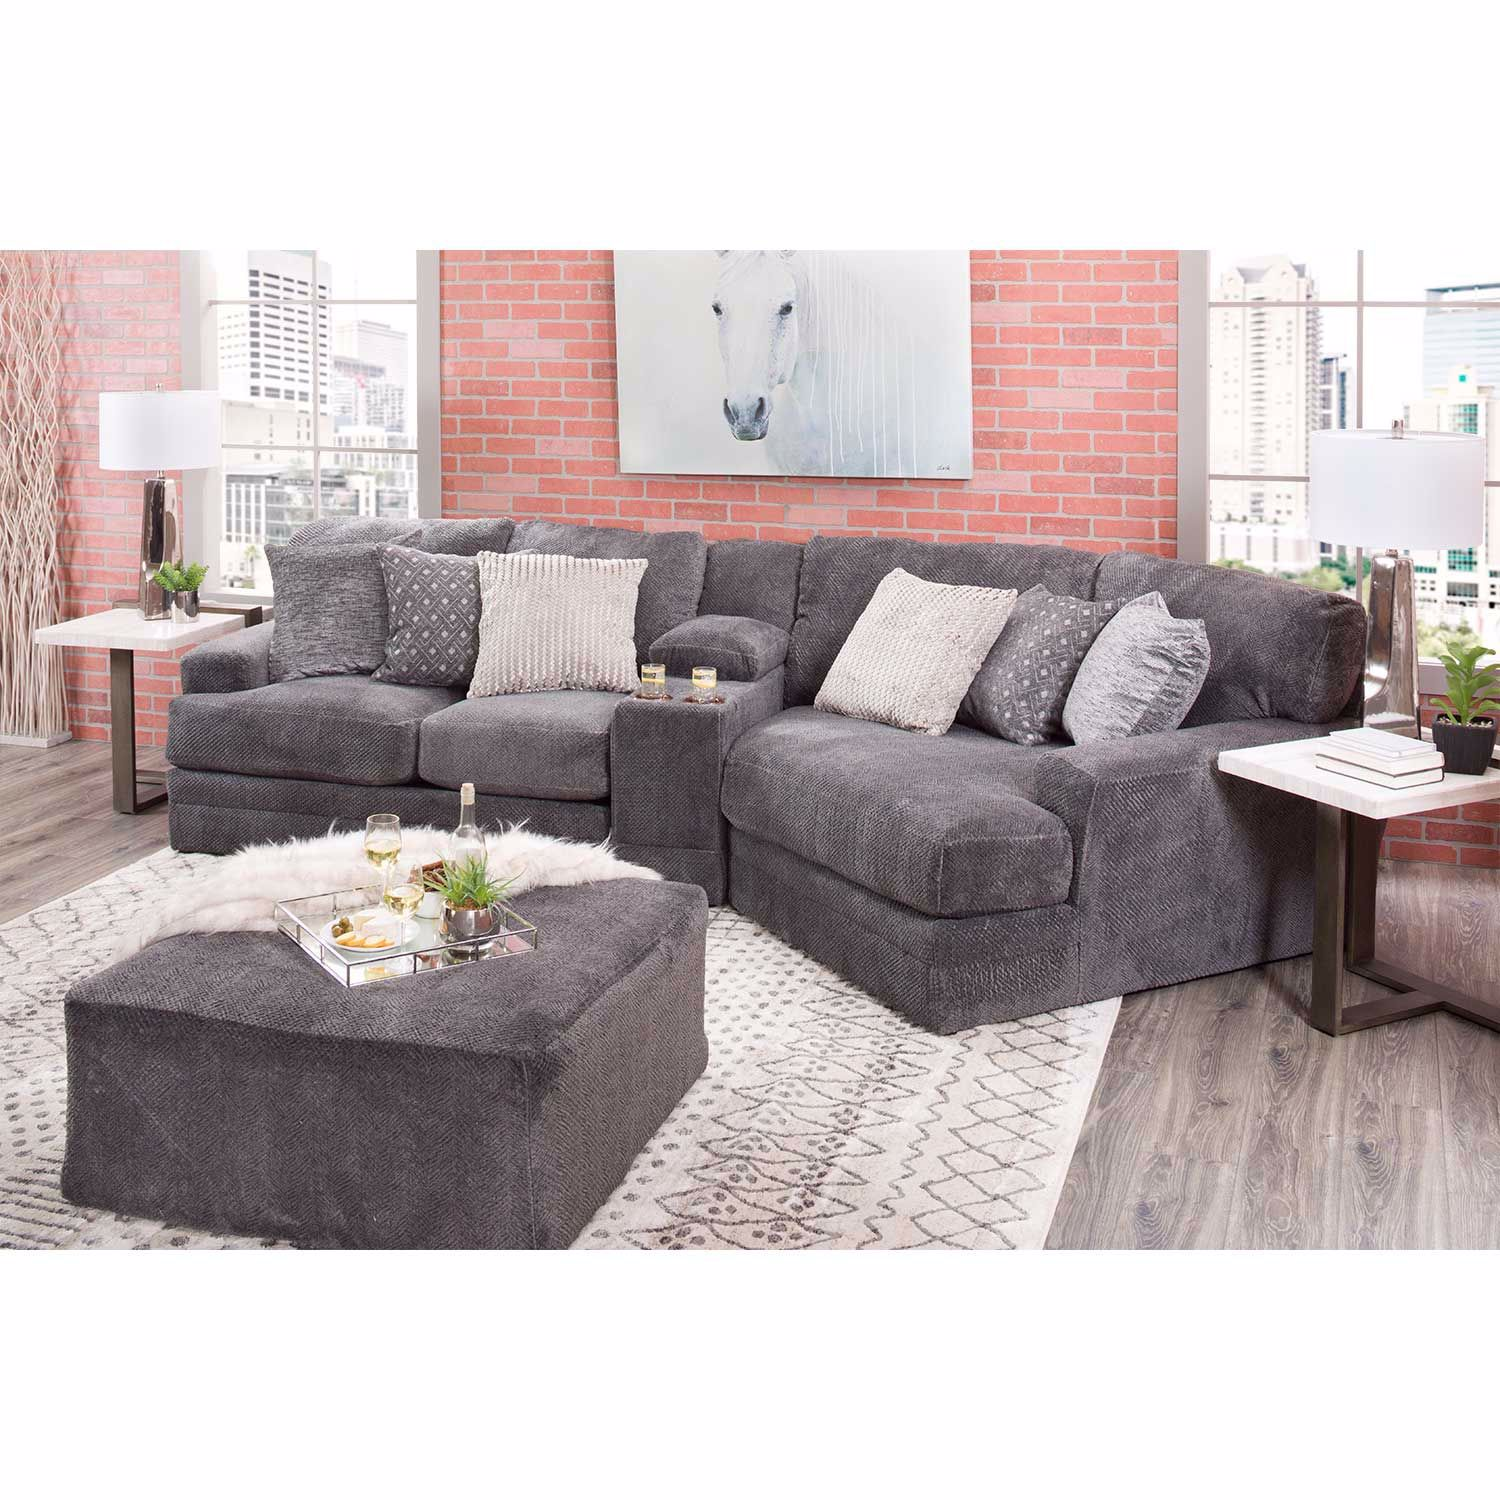 Mammoth 3 Piece Sectional With Laf Wedge 4376 46 84 96 Jackson Furniture Catnapper Afw Com